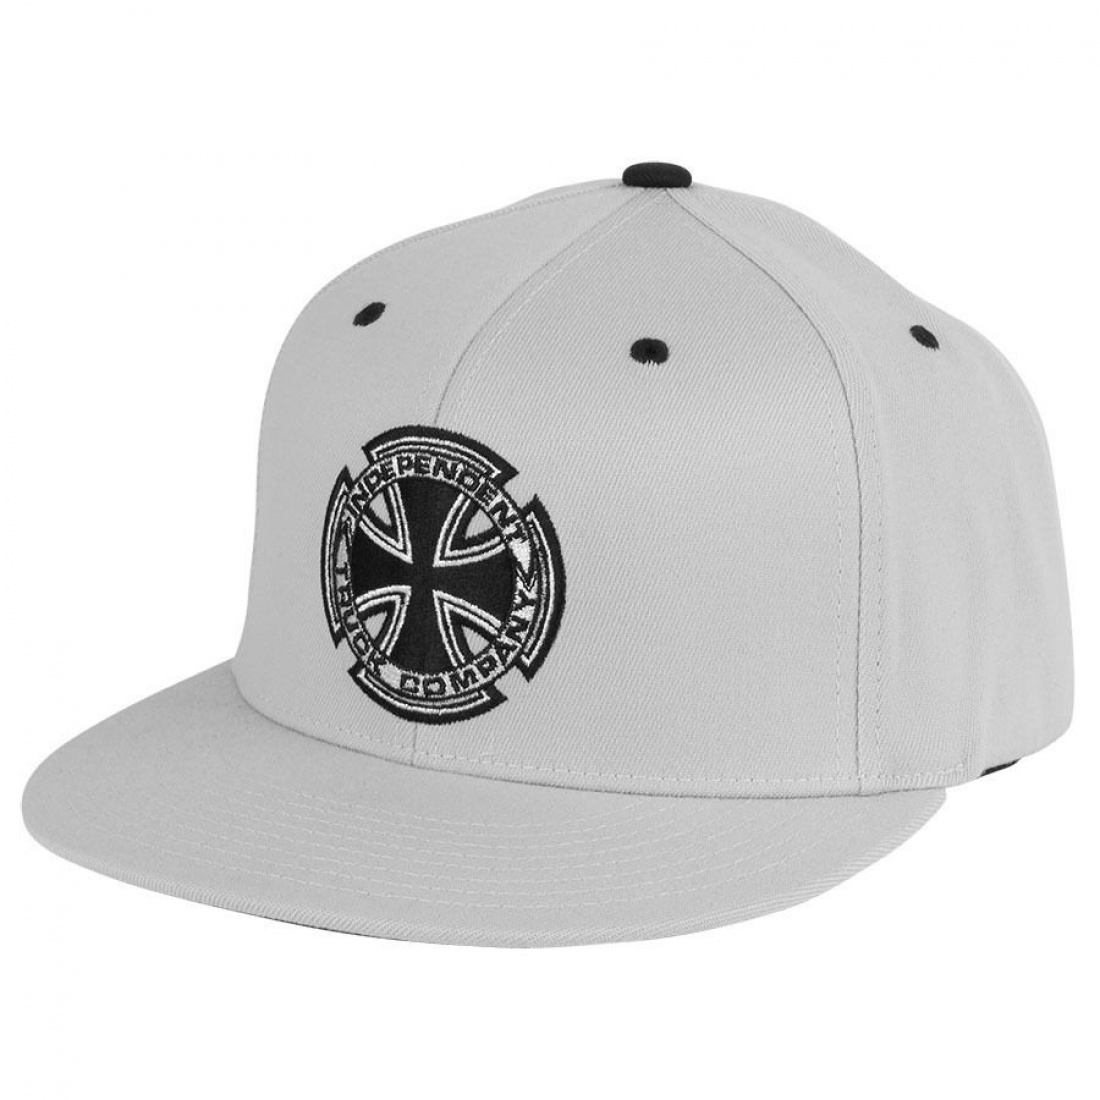 IND-Metallic Cross Flexfit Fitted Hat Grey L/XL Mens